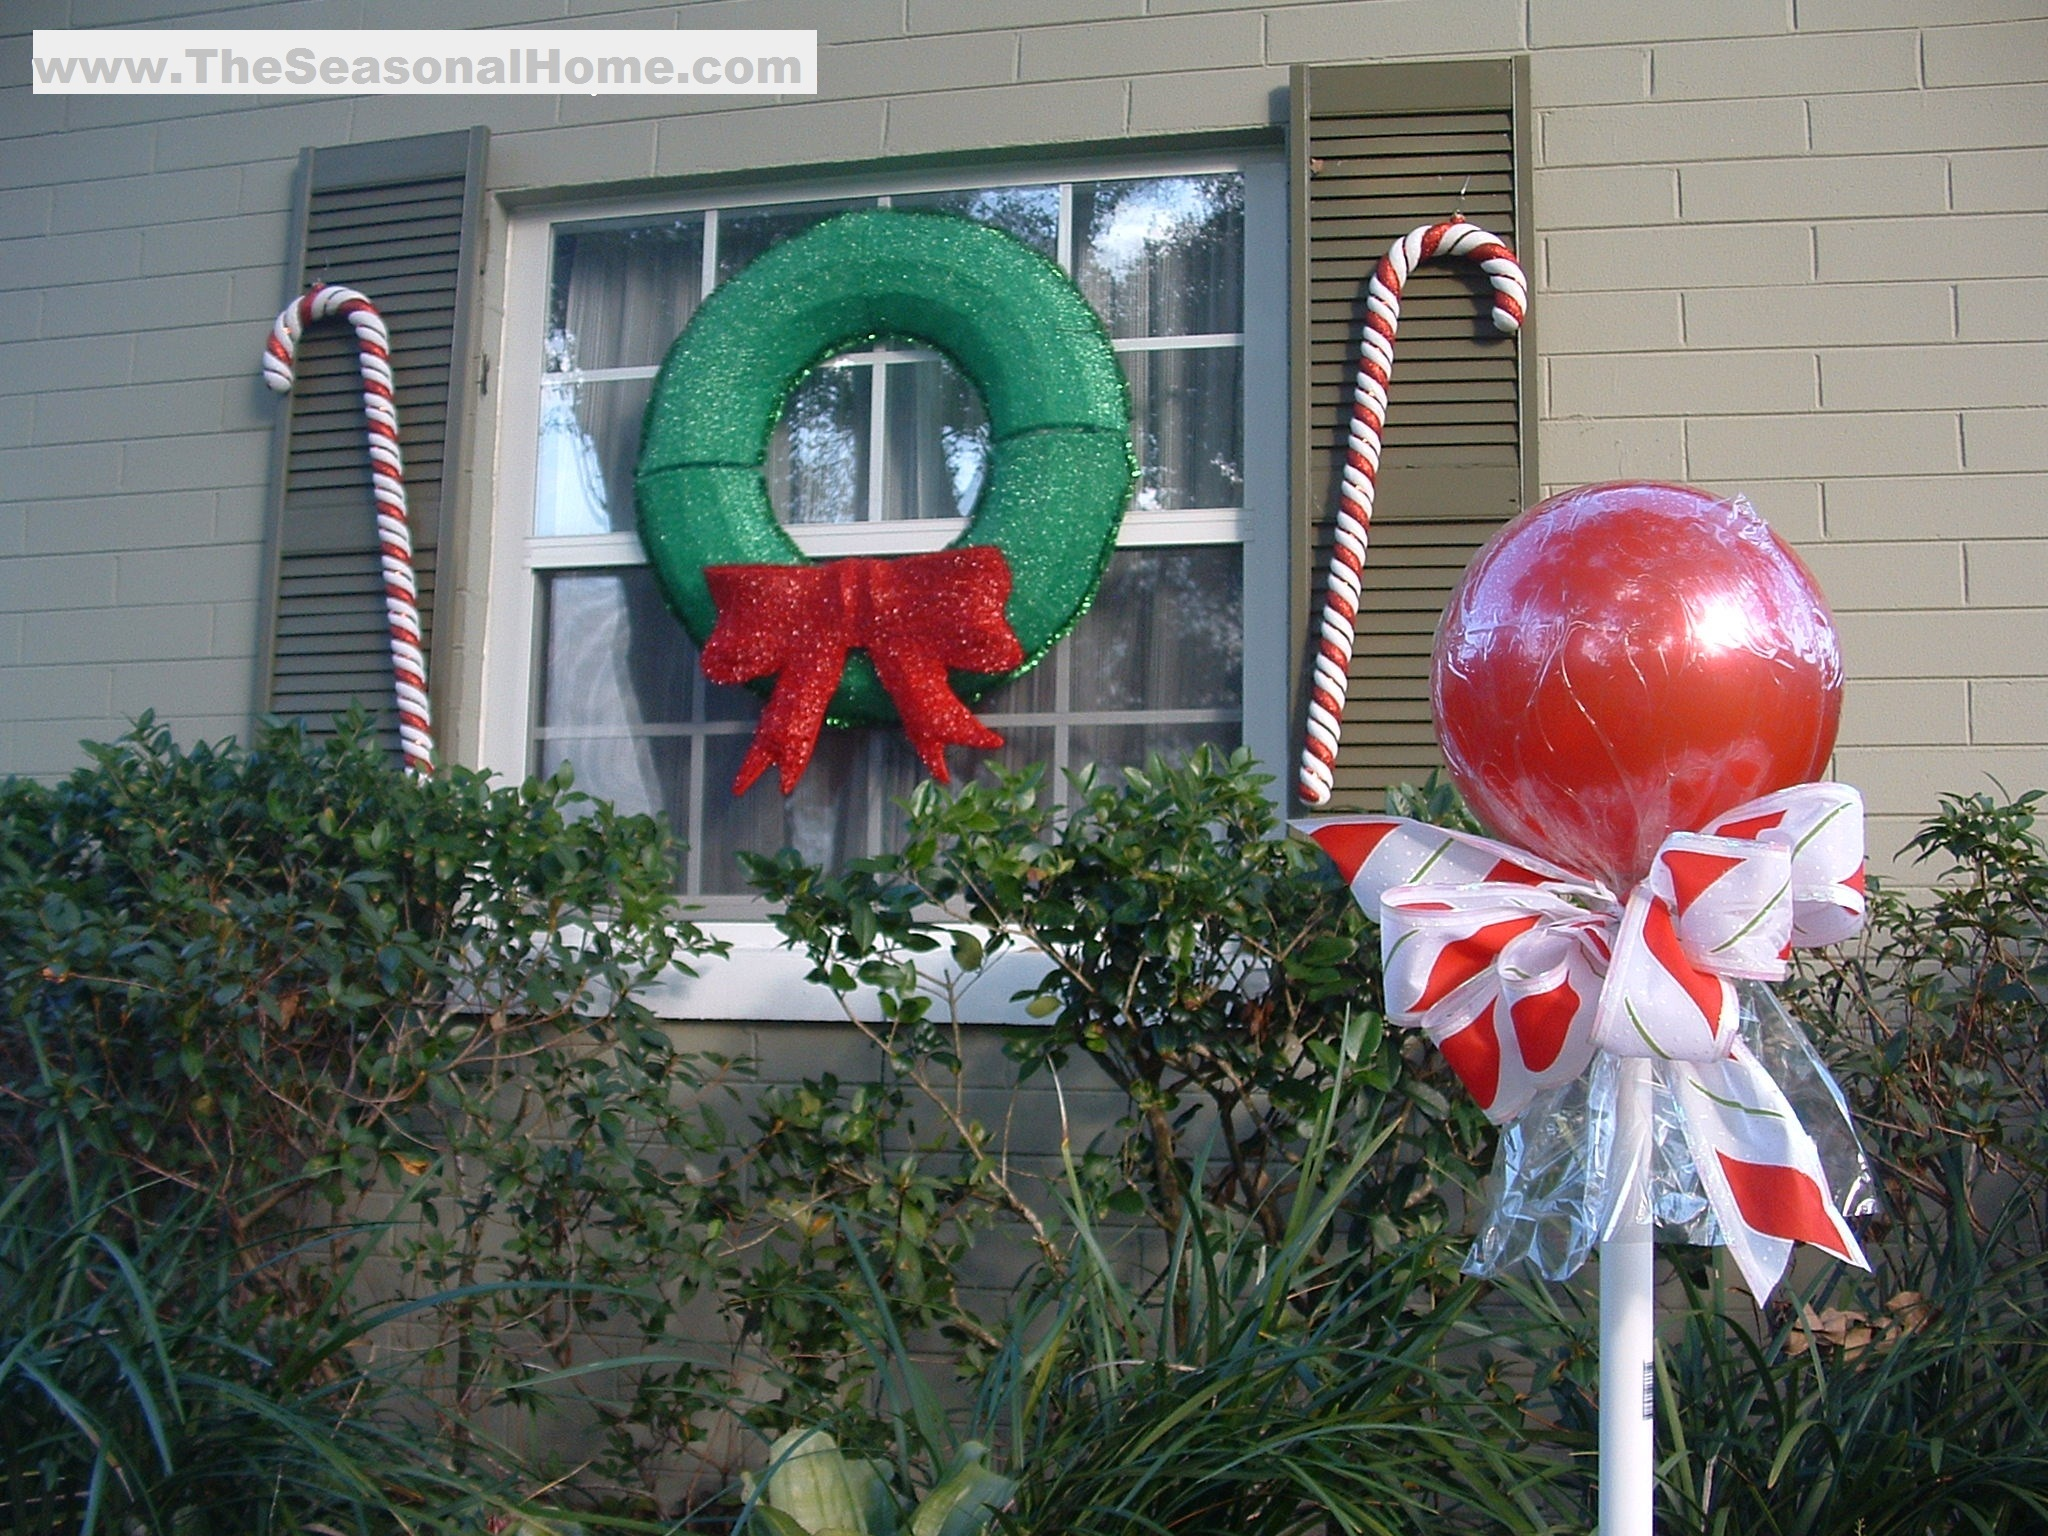 lollipop lollipops_red - Michaels Outdoor Christmas Decorations